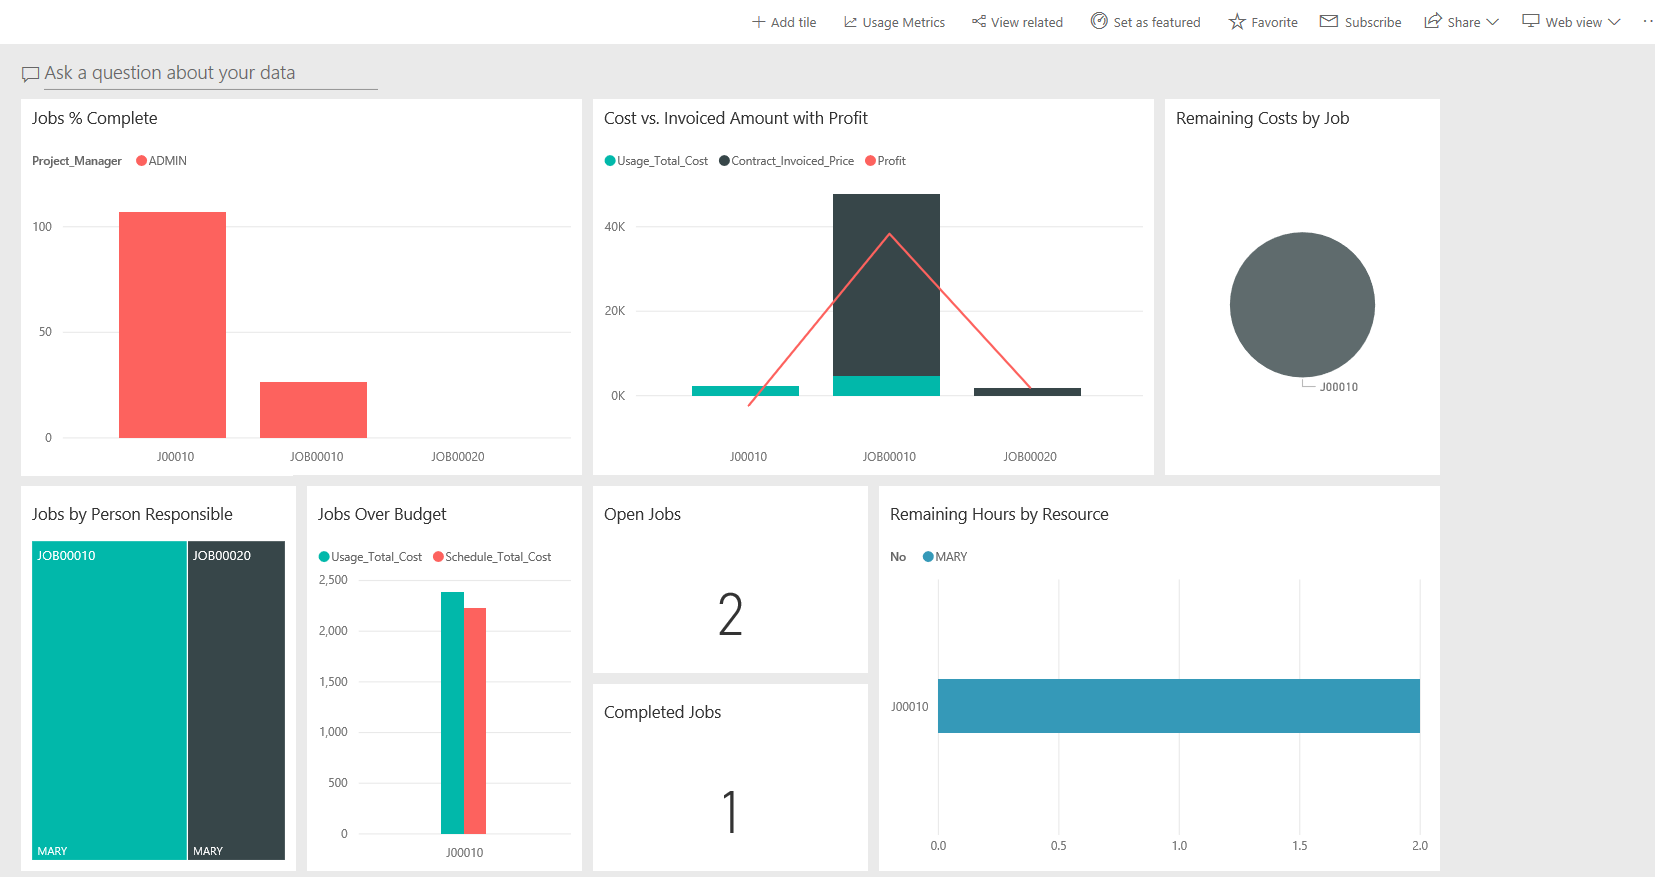 microsoft dynamics 365 for finance and operations jobs